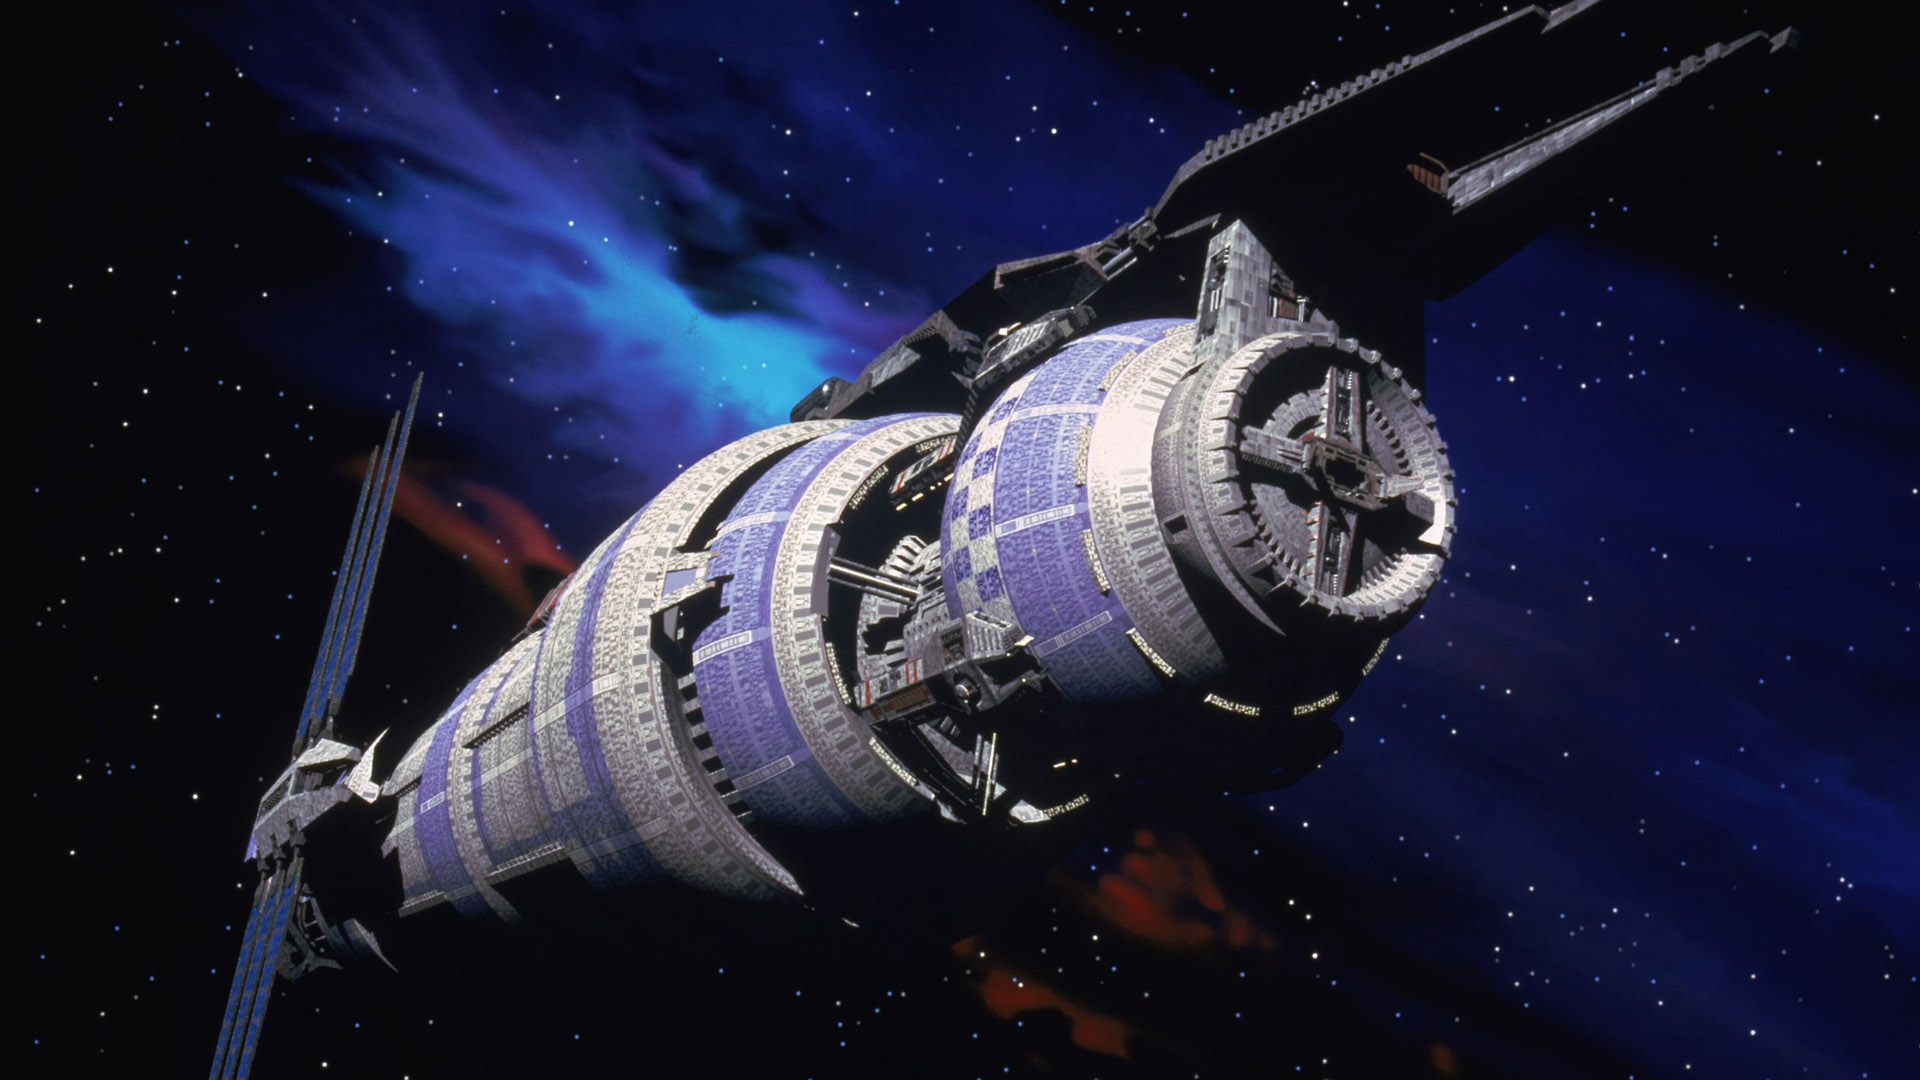 The Babylon 5 space station from Babylon 5